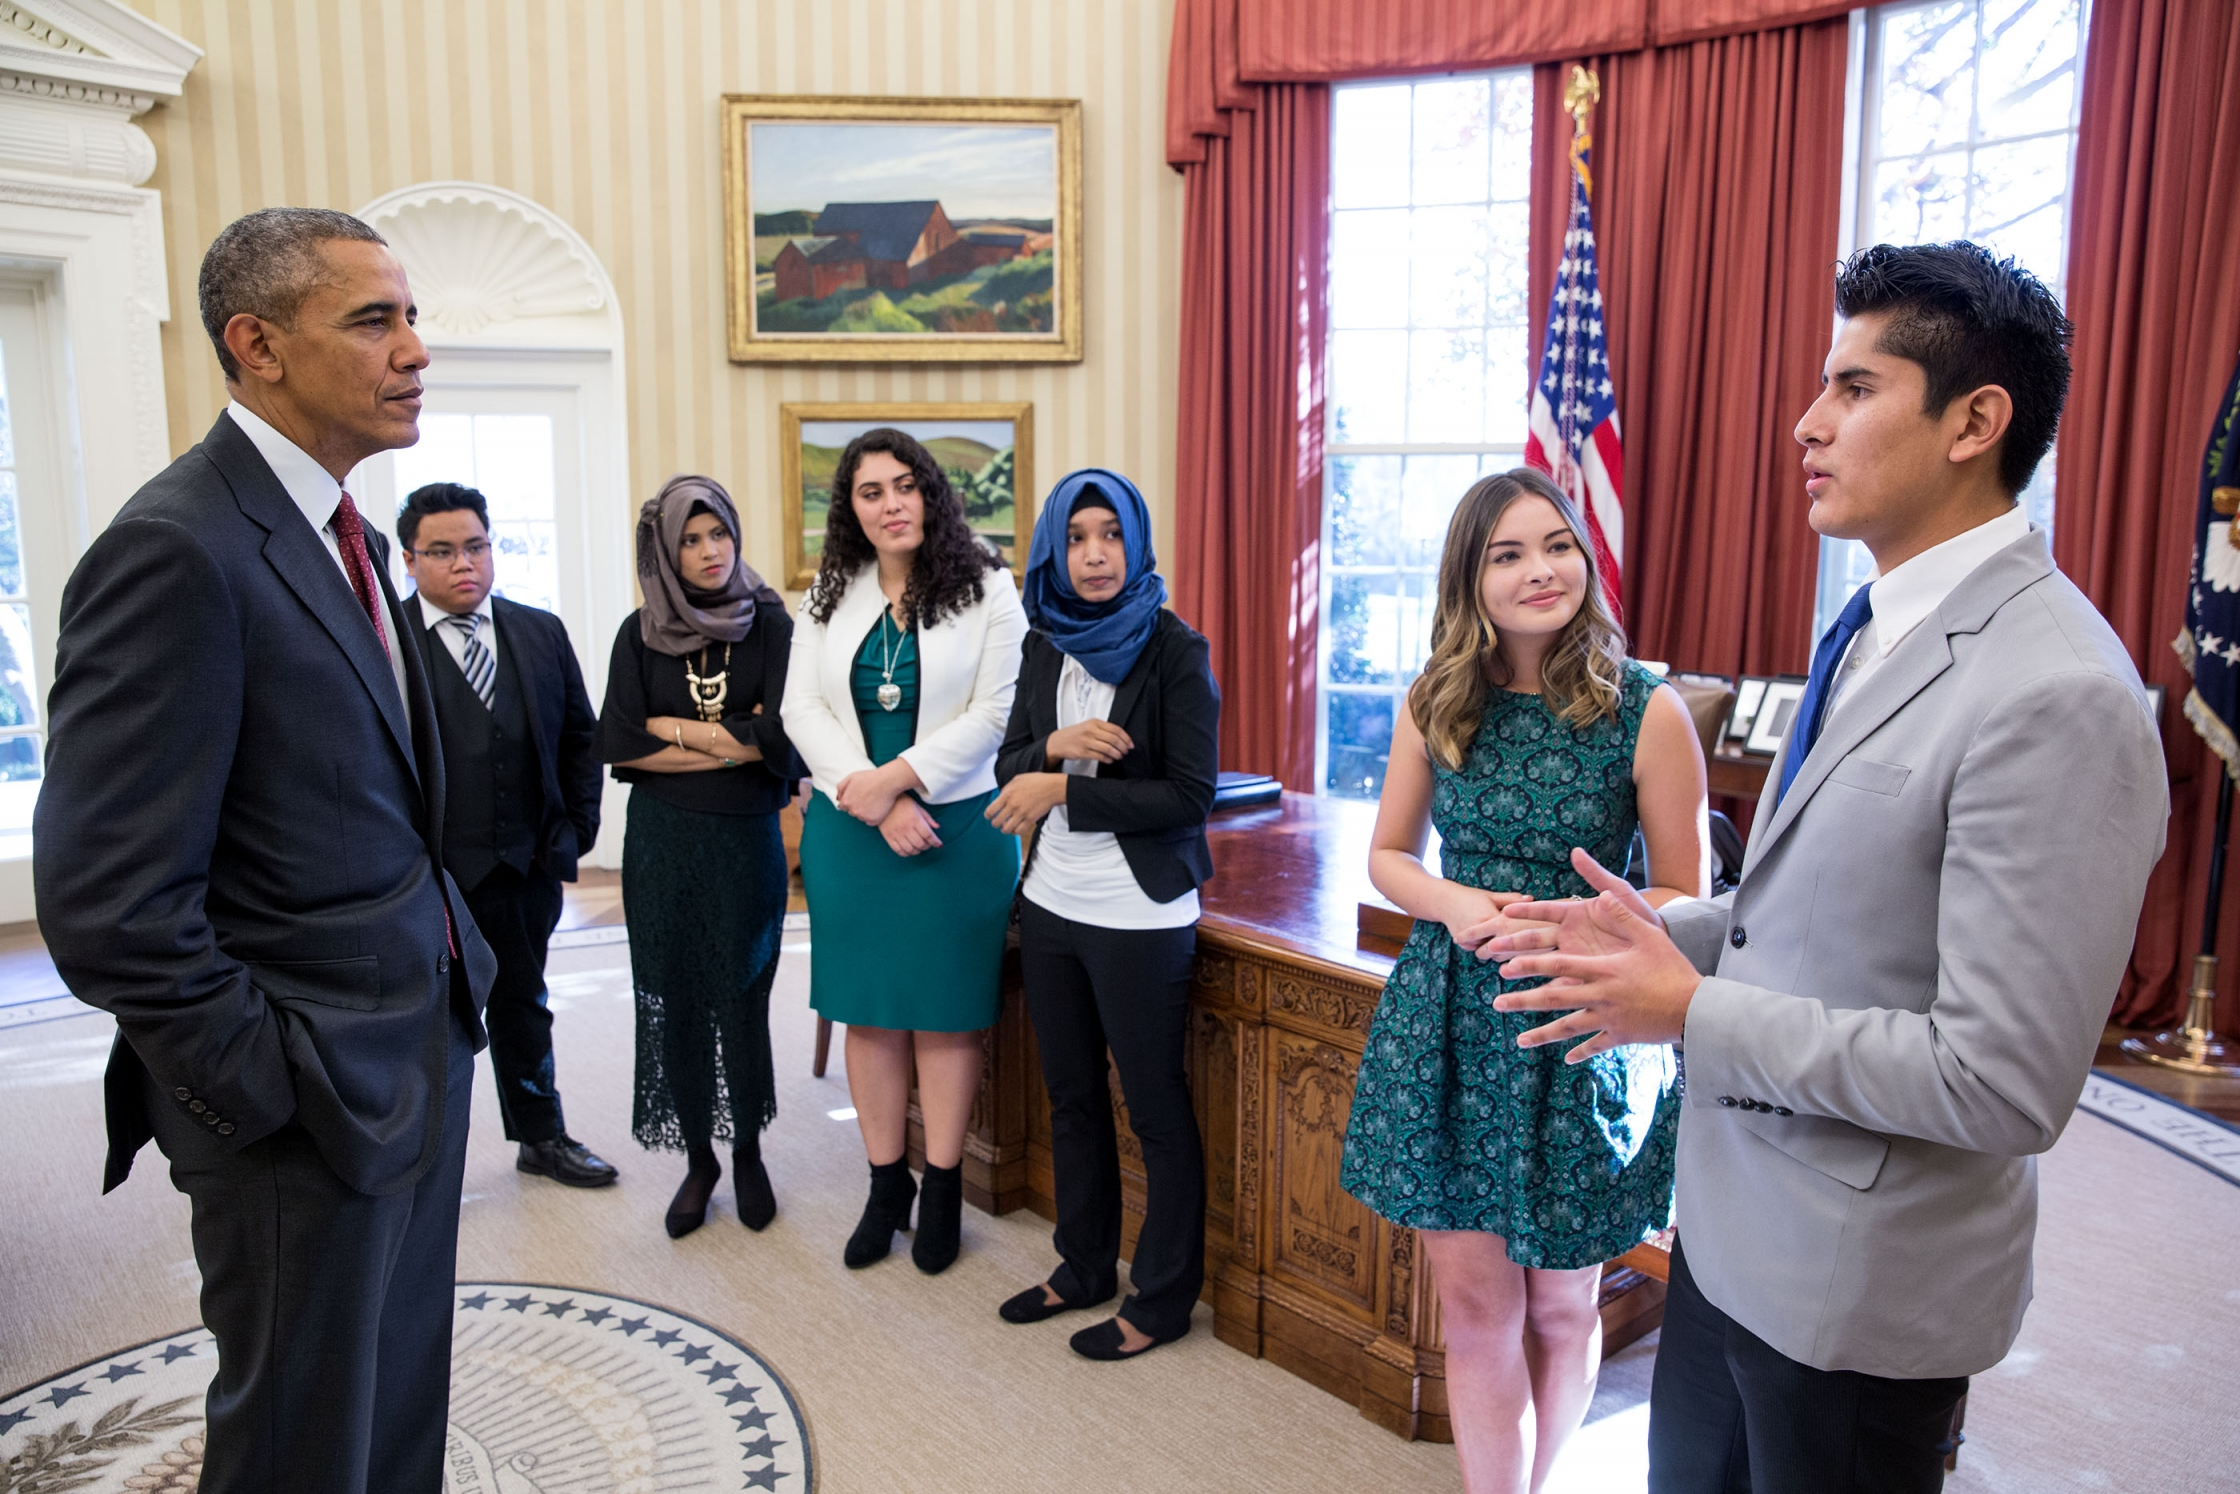 President Barack Obama greets winners of youth entrepreneurship competitions in the Oval Office, Nov. 25, 2015. The President greets from left to right: Joseph Fortuno, Jannatul Rowshan, Crystal Sanchez, Urbana Anam, Rachel Gorgas, and Kenneth Huertas. (Photo Credit: White House/Pete Souza)